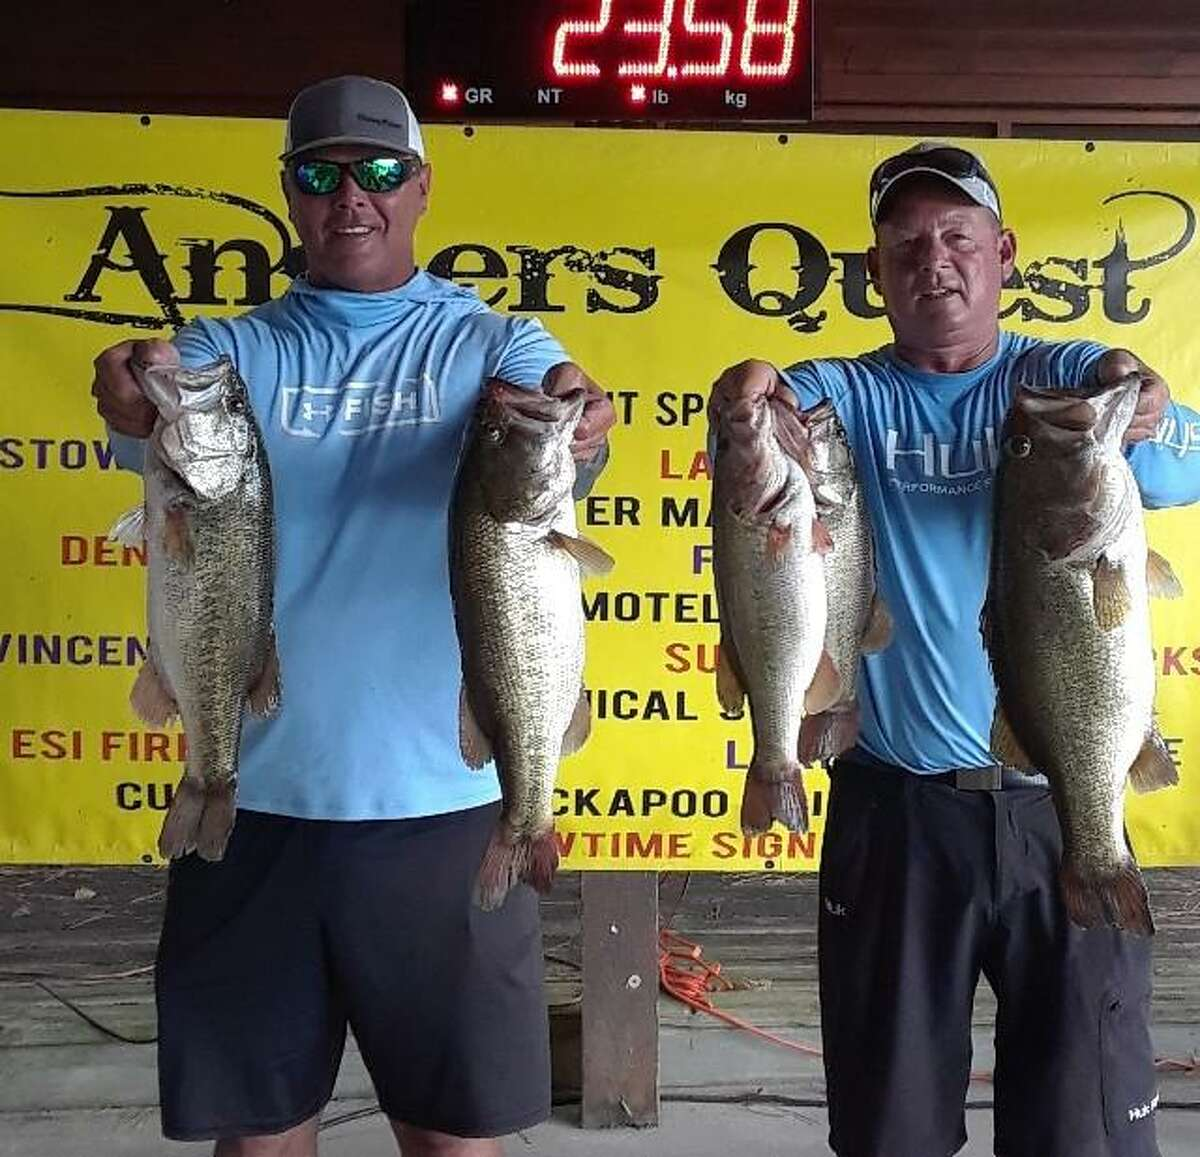 John Stephenson and Ronnie Wagner came in third place in the Anglers Quest Lake Conroe Team Championship with a two day total weight 35.92 pounds.